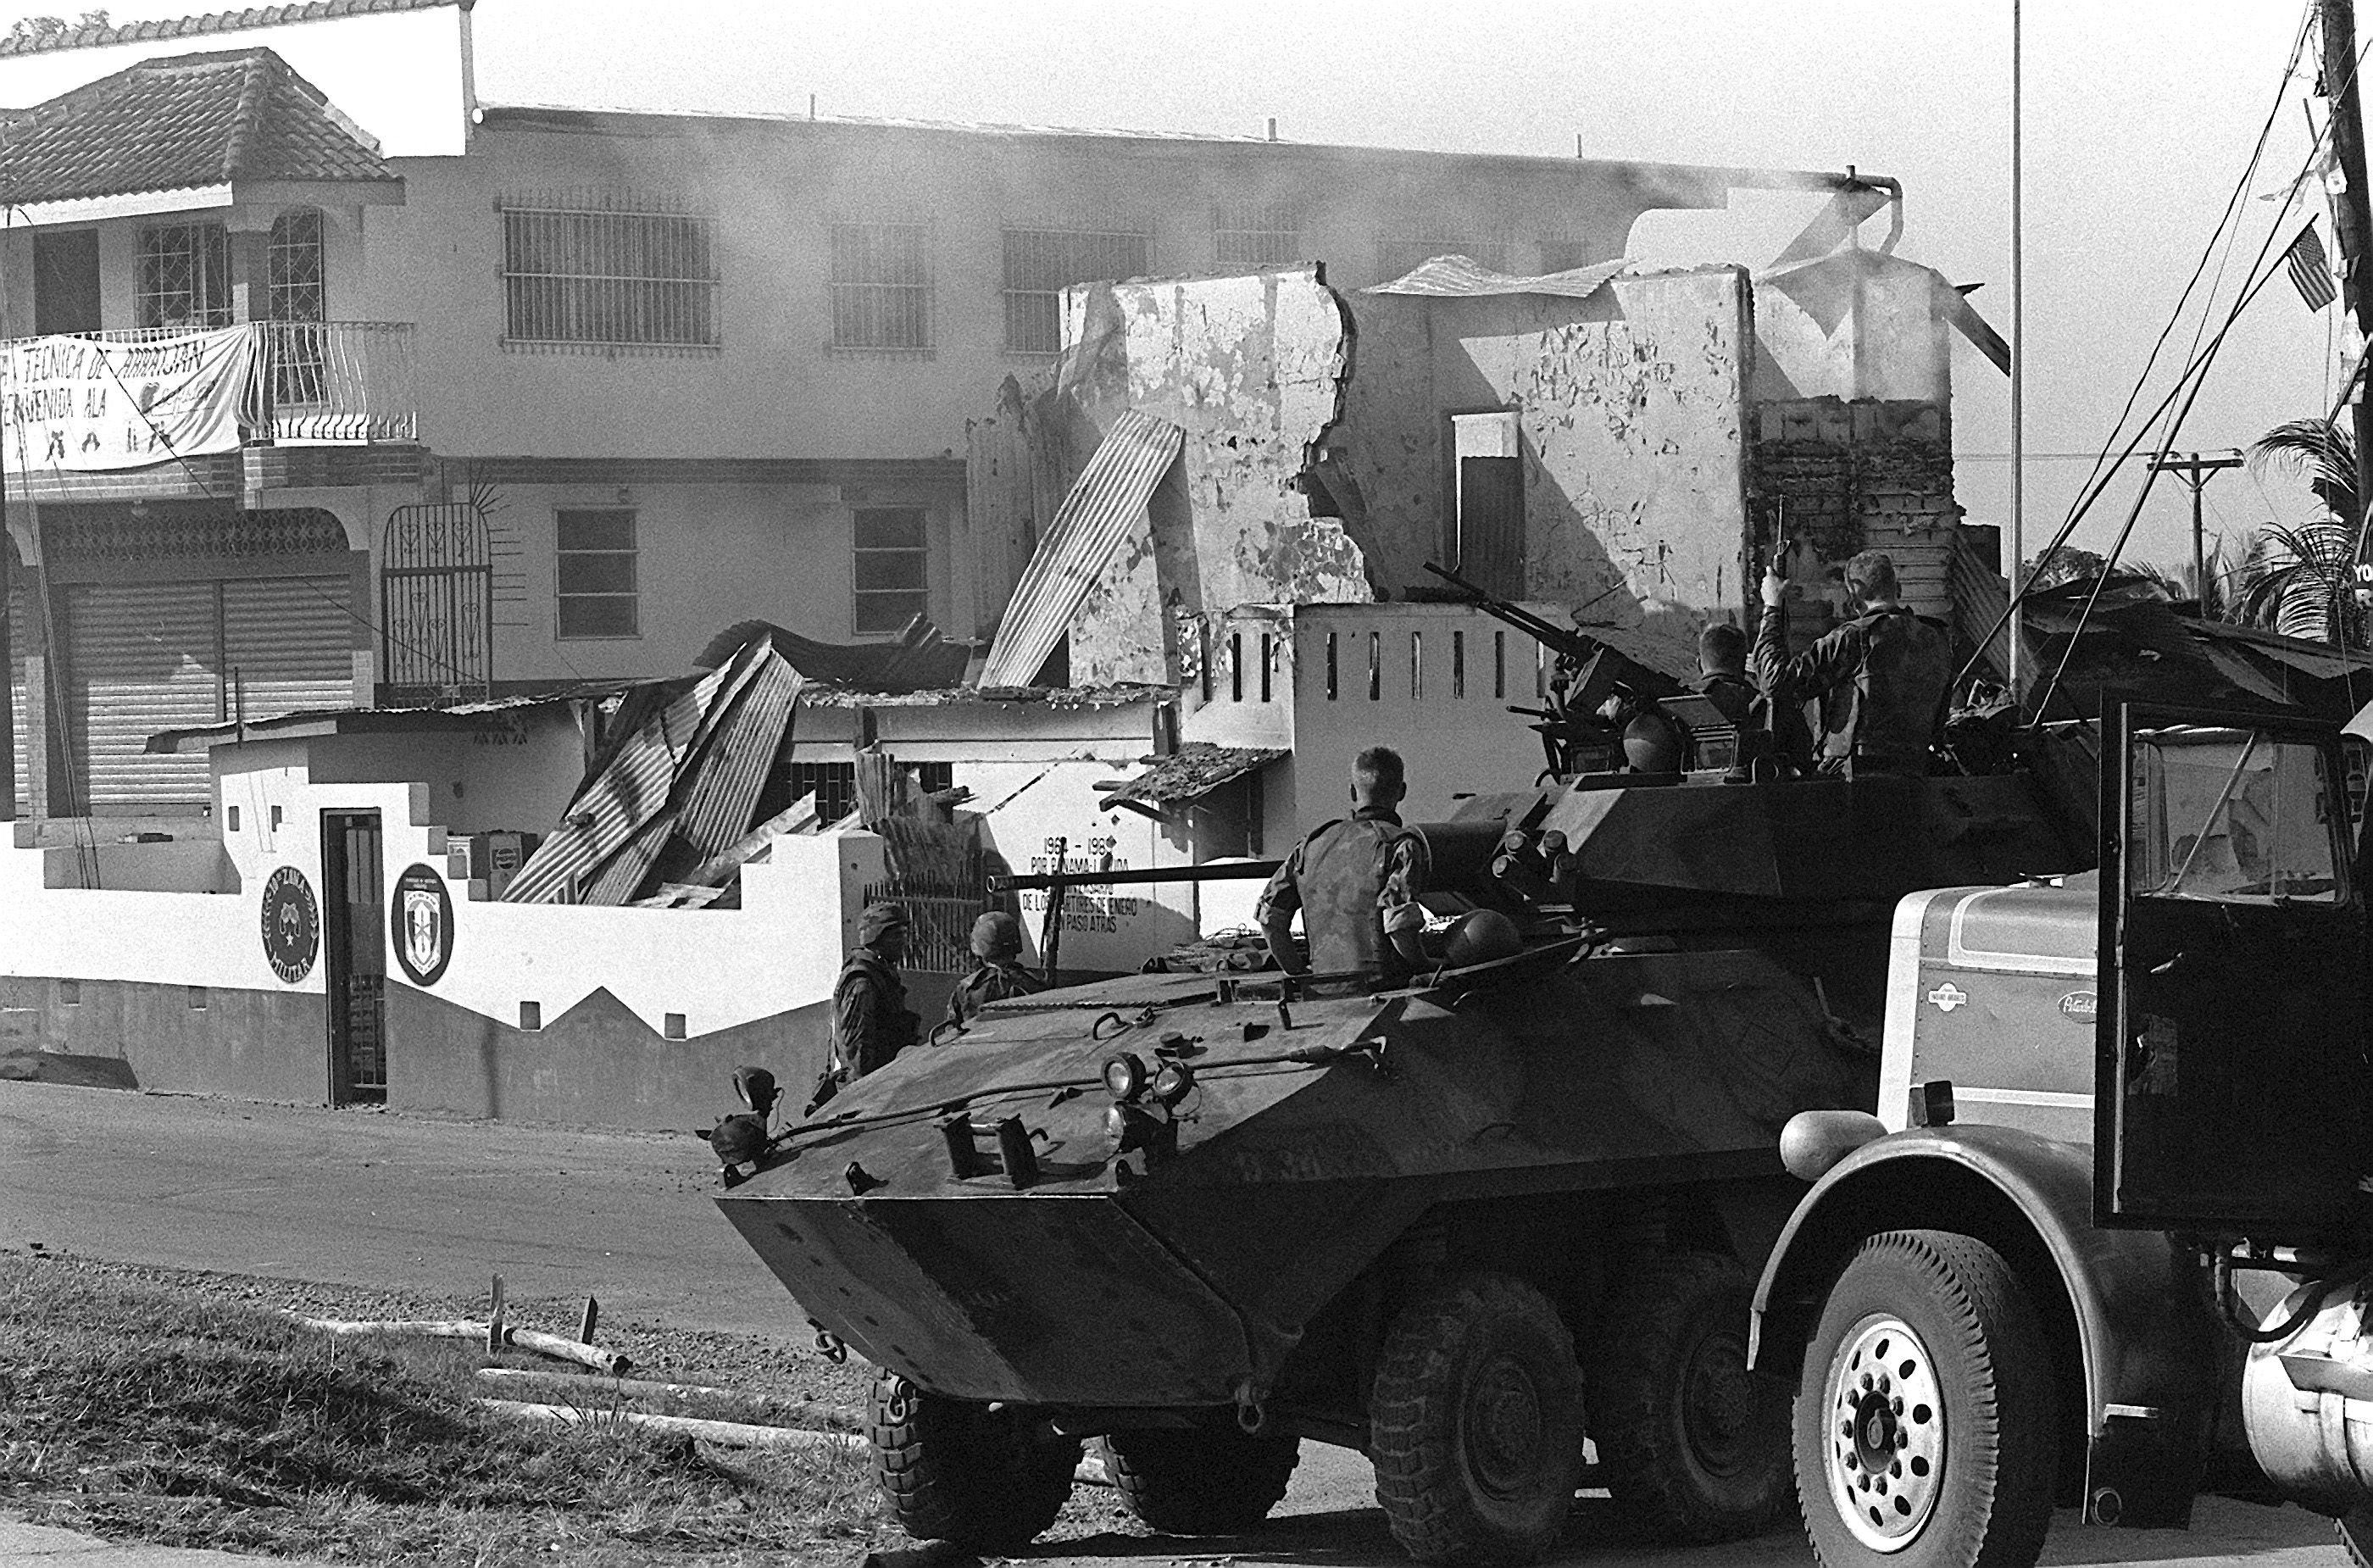 Invasion of Panama – Marines of Company D, 2nd Light Armored Infantry Battalion, stand guard with their LAV-25s during the first day of Operation Just Cause